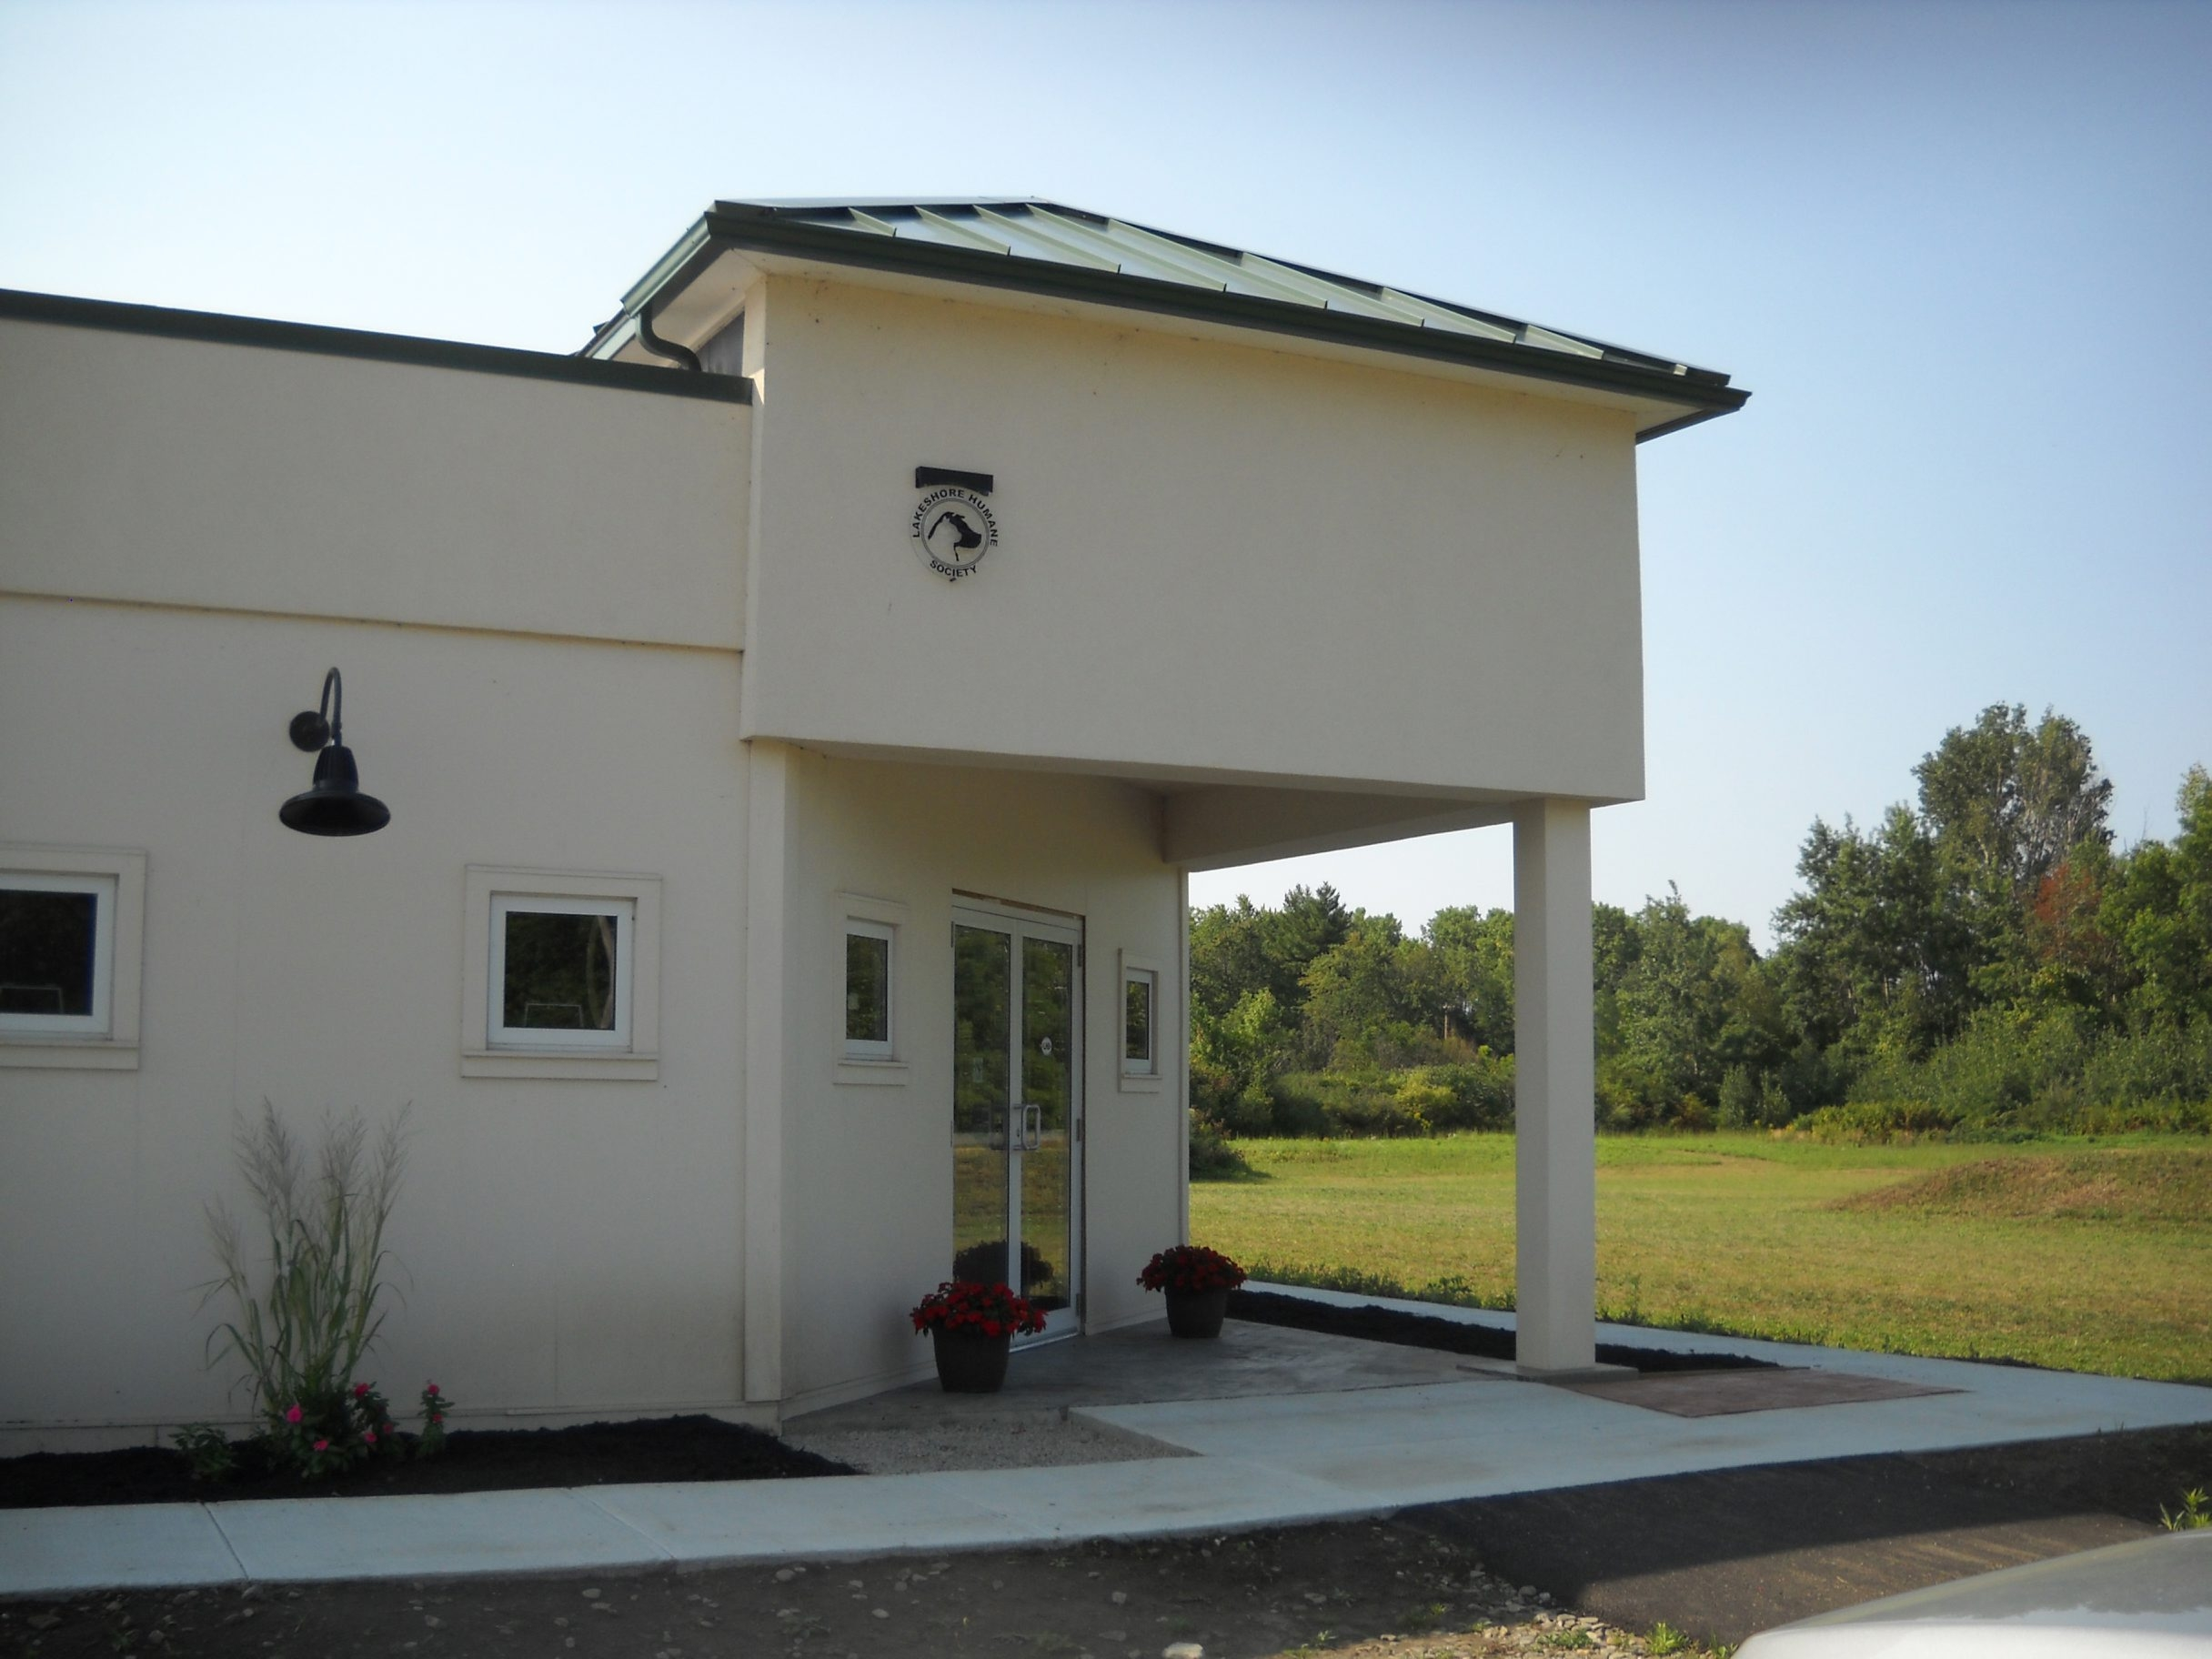 It took several years of fundraising and a lot of sweat equity from volunteers with the Lake Shore Humane Society, but the Operation Homeward Bound home for cats and dogs opened recently.